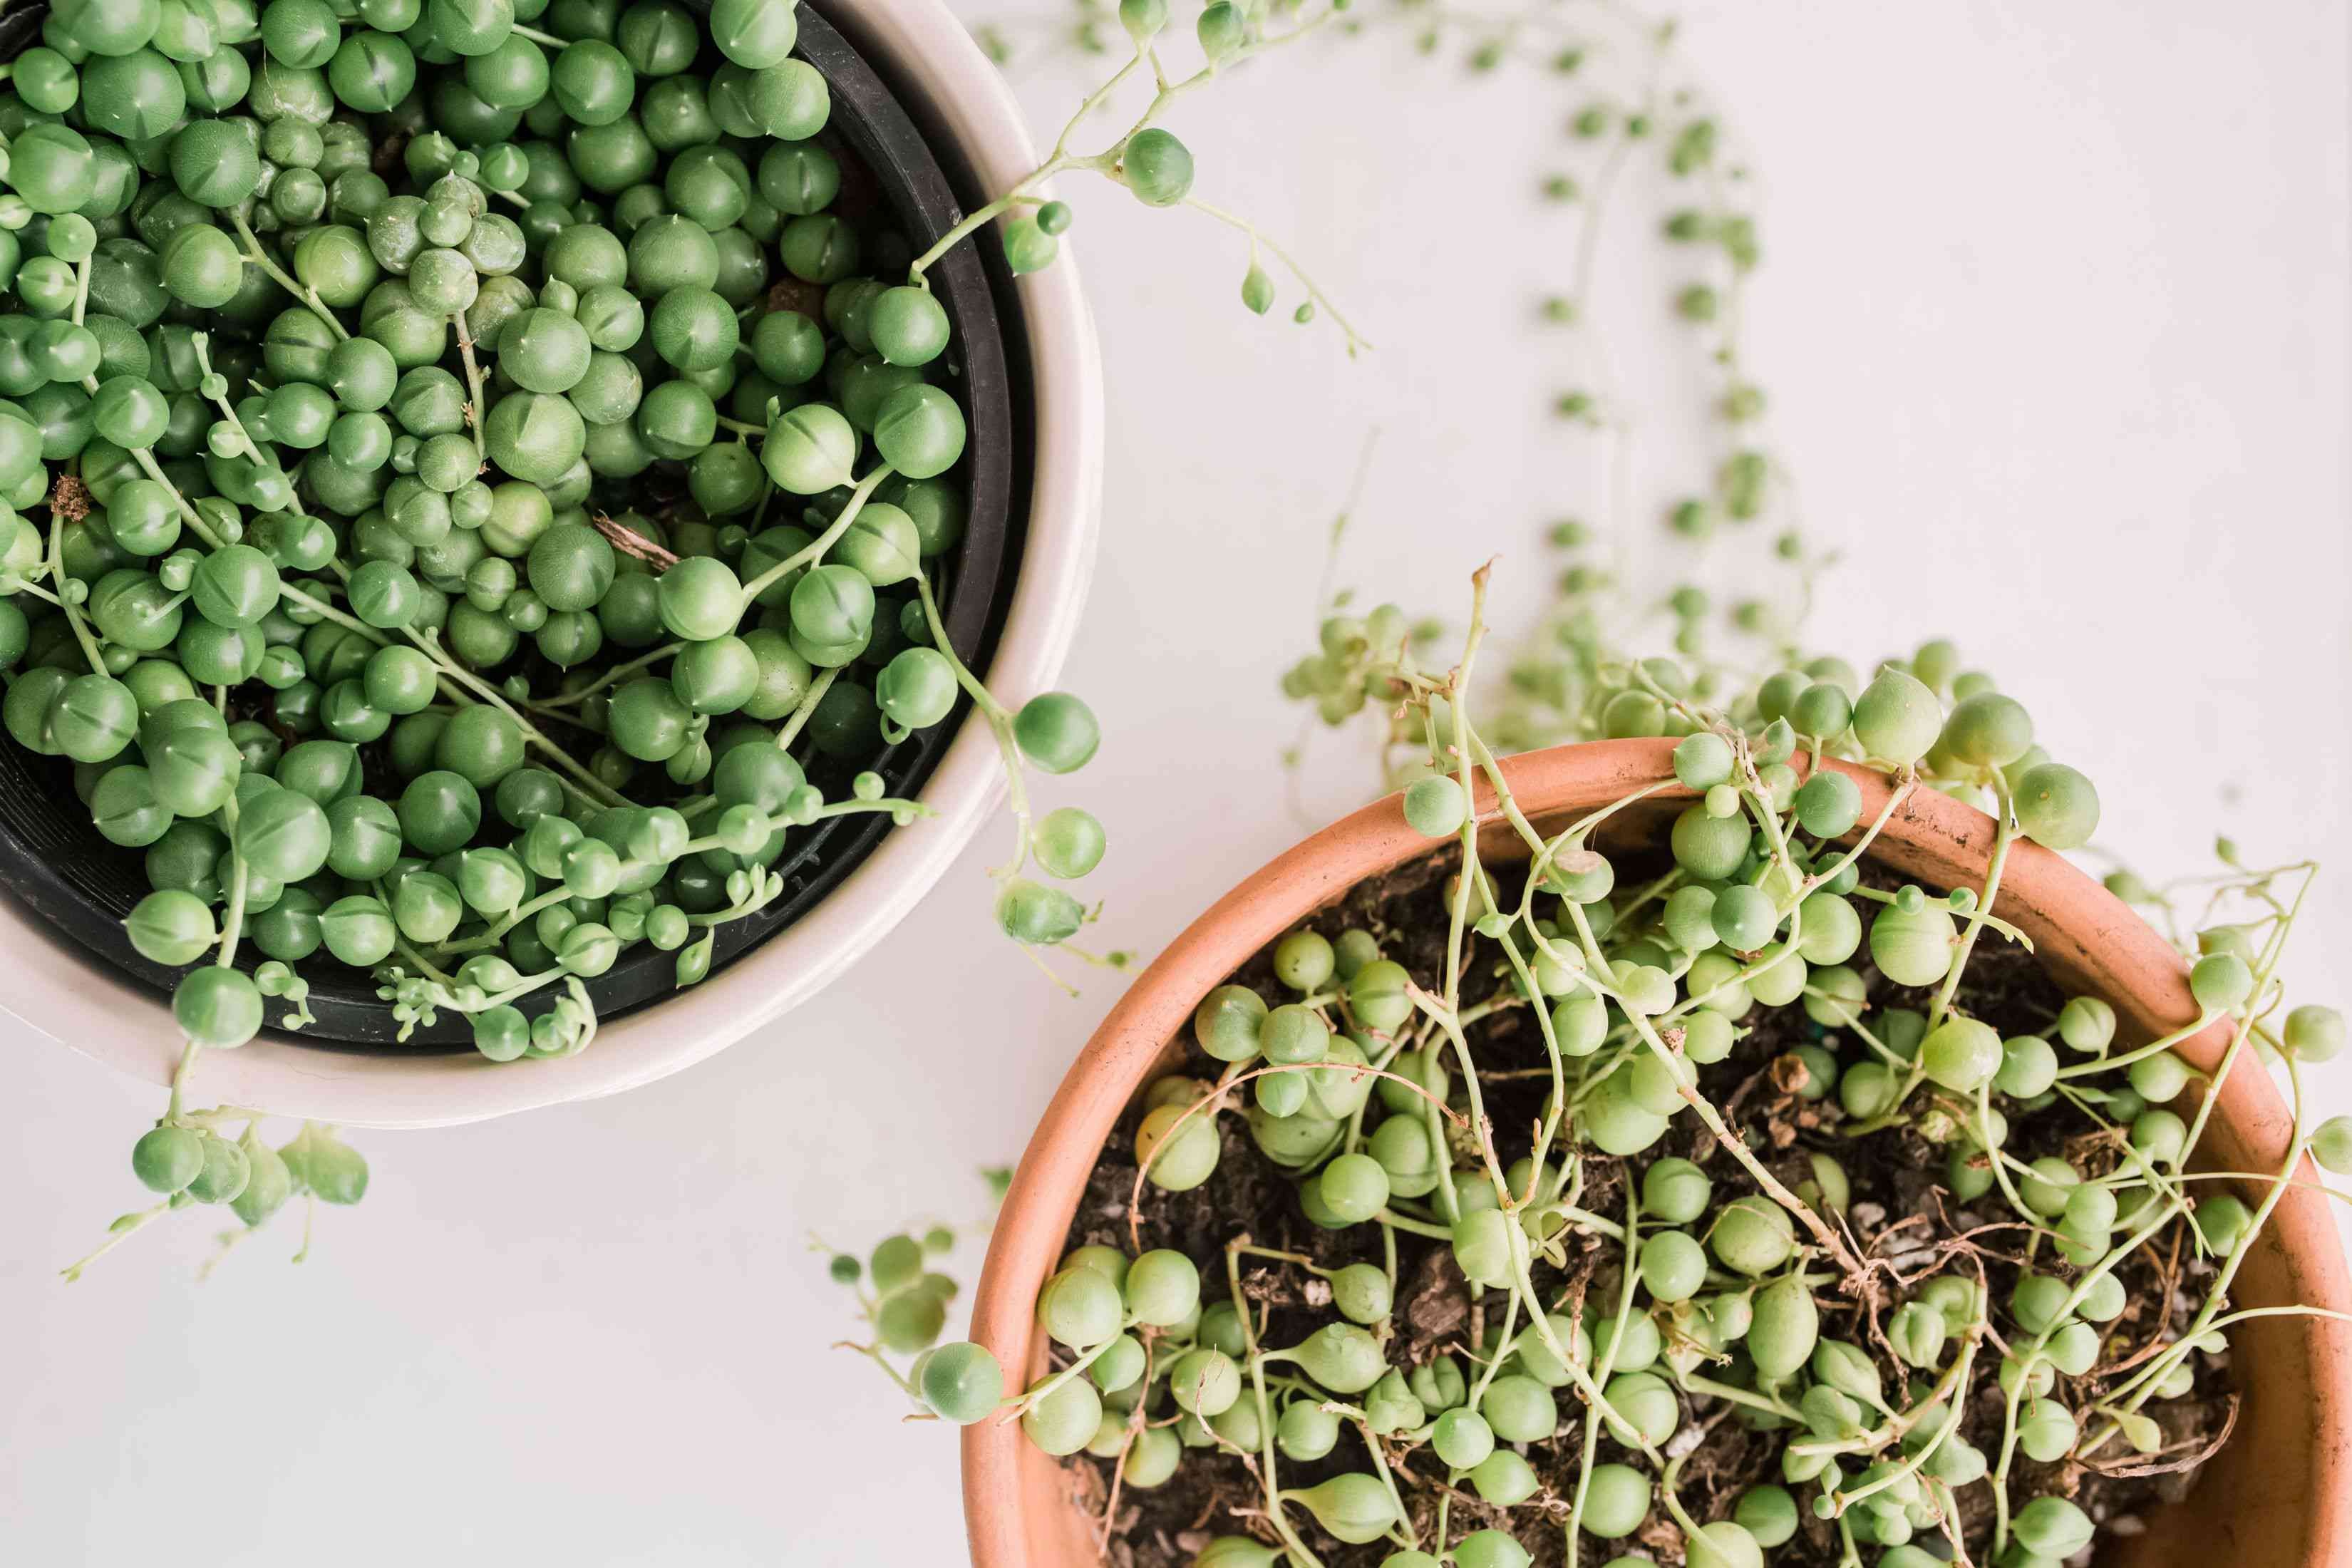 String of pearls plant with small green bead-like succulent leaves in terracotta and white pots closeup